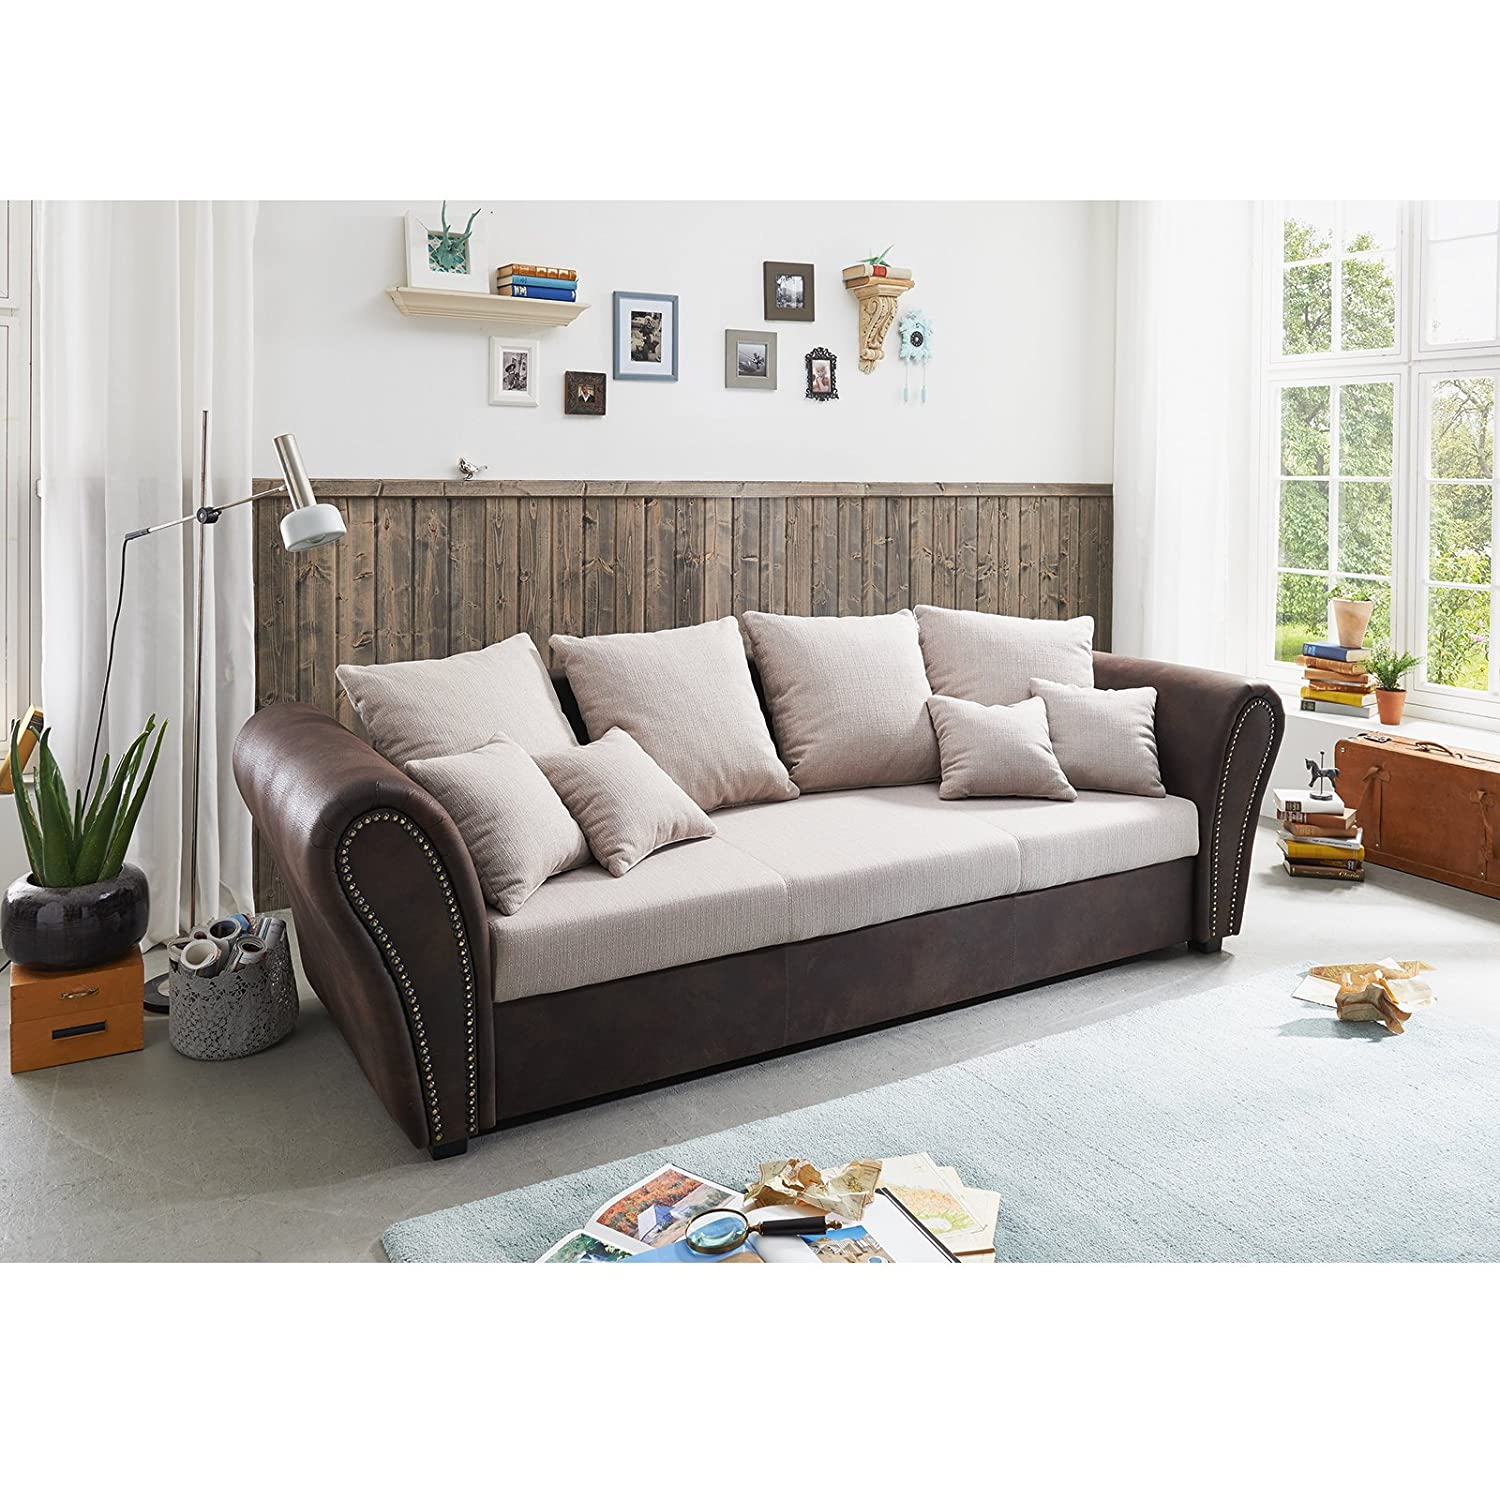 riesen sofa affordable amazing sofa with big sofa afrika with riesen sofa perfect riesen couch. Black Bedroom Furniture Sets. Home Design Ideas